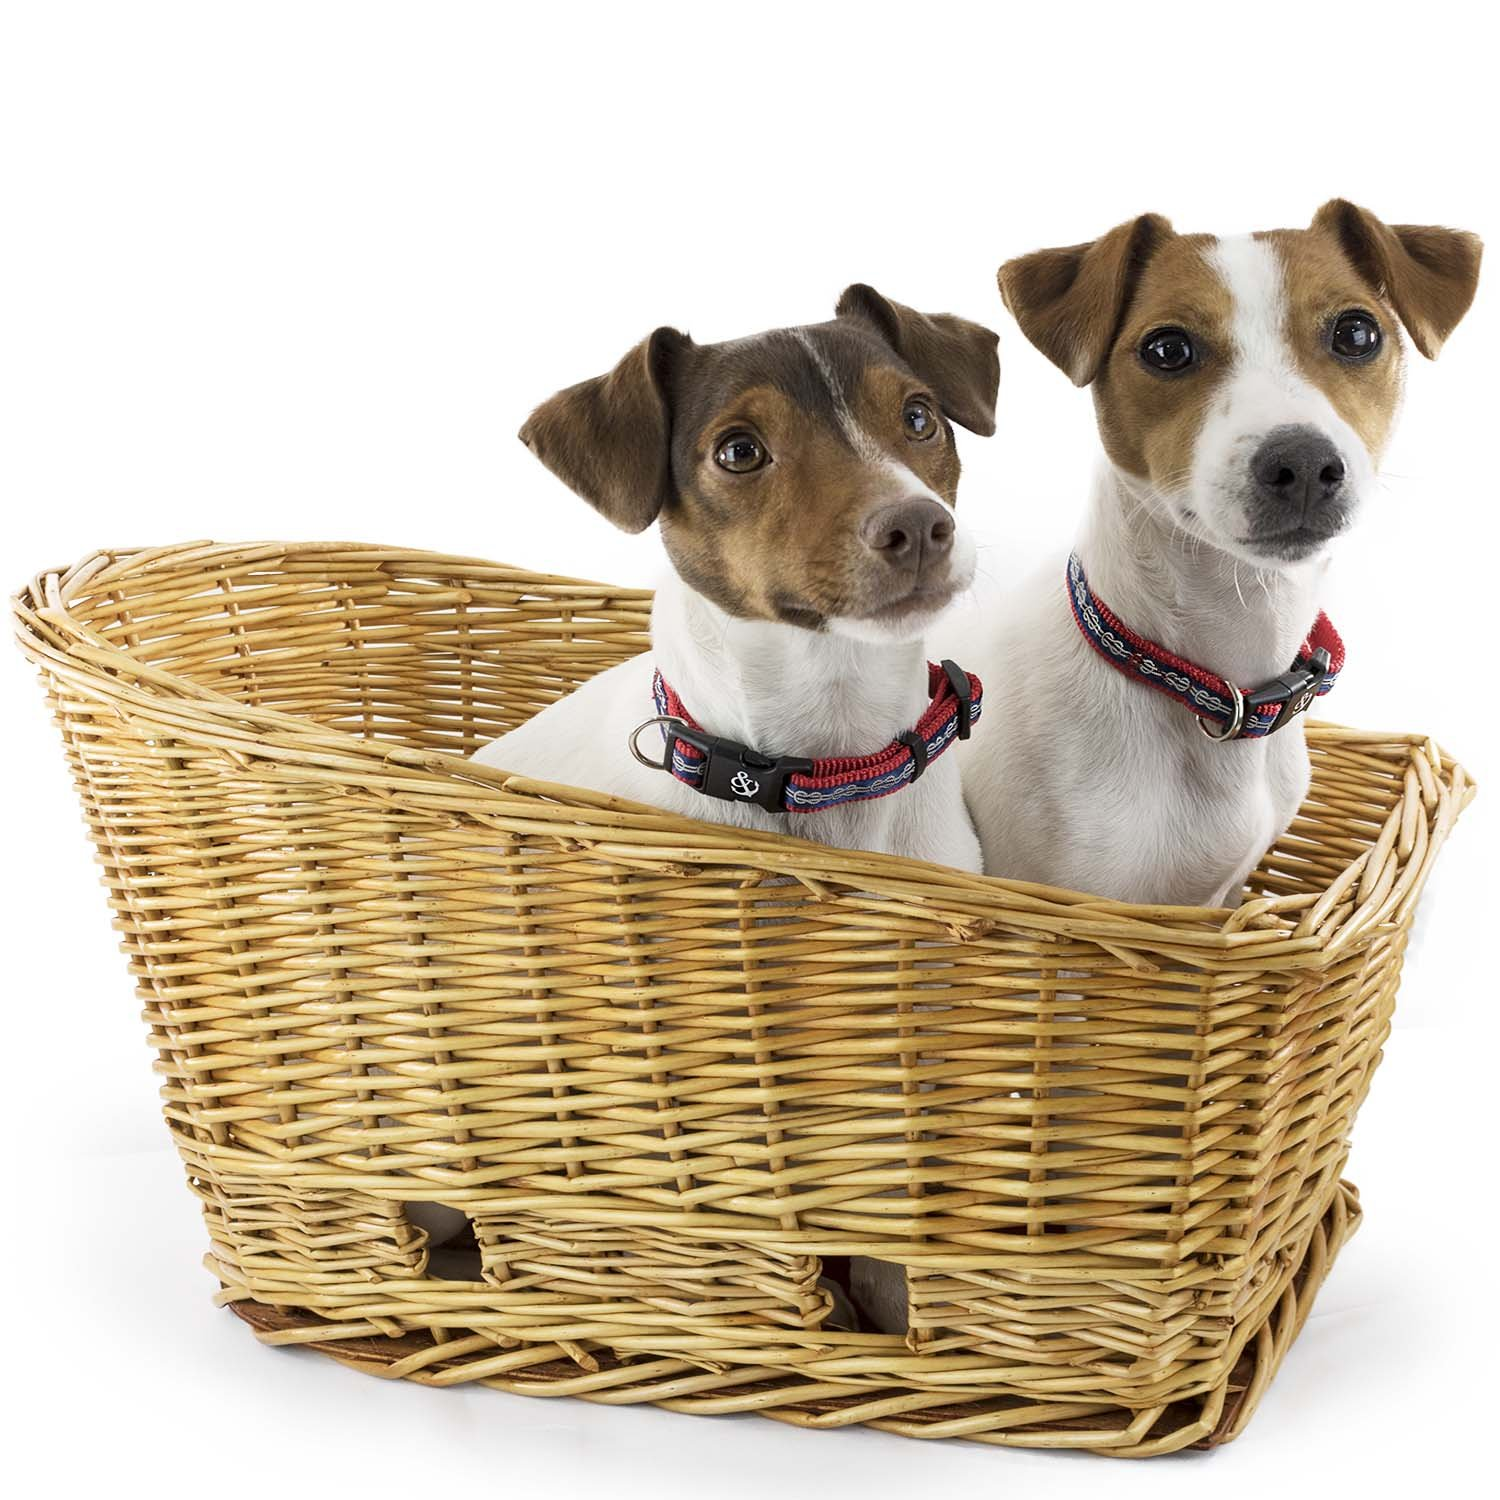 Large Rear Mount Willow Bicycle Basket for Dogs - Hand Crafted By Beach and Dog Co - Leashes Included (Cape May Large)